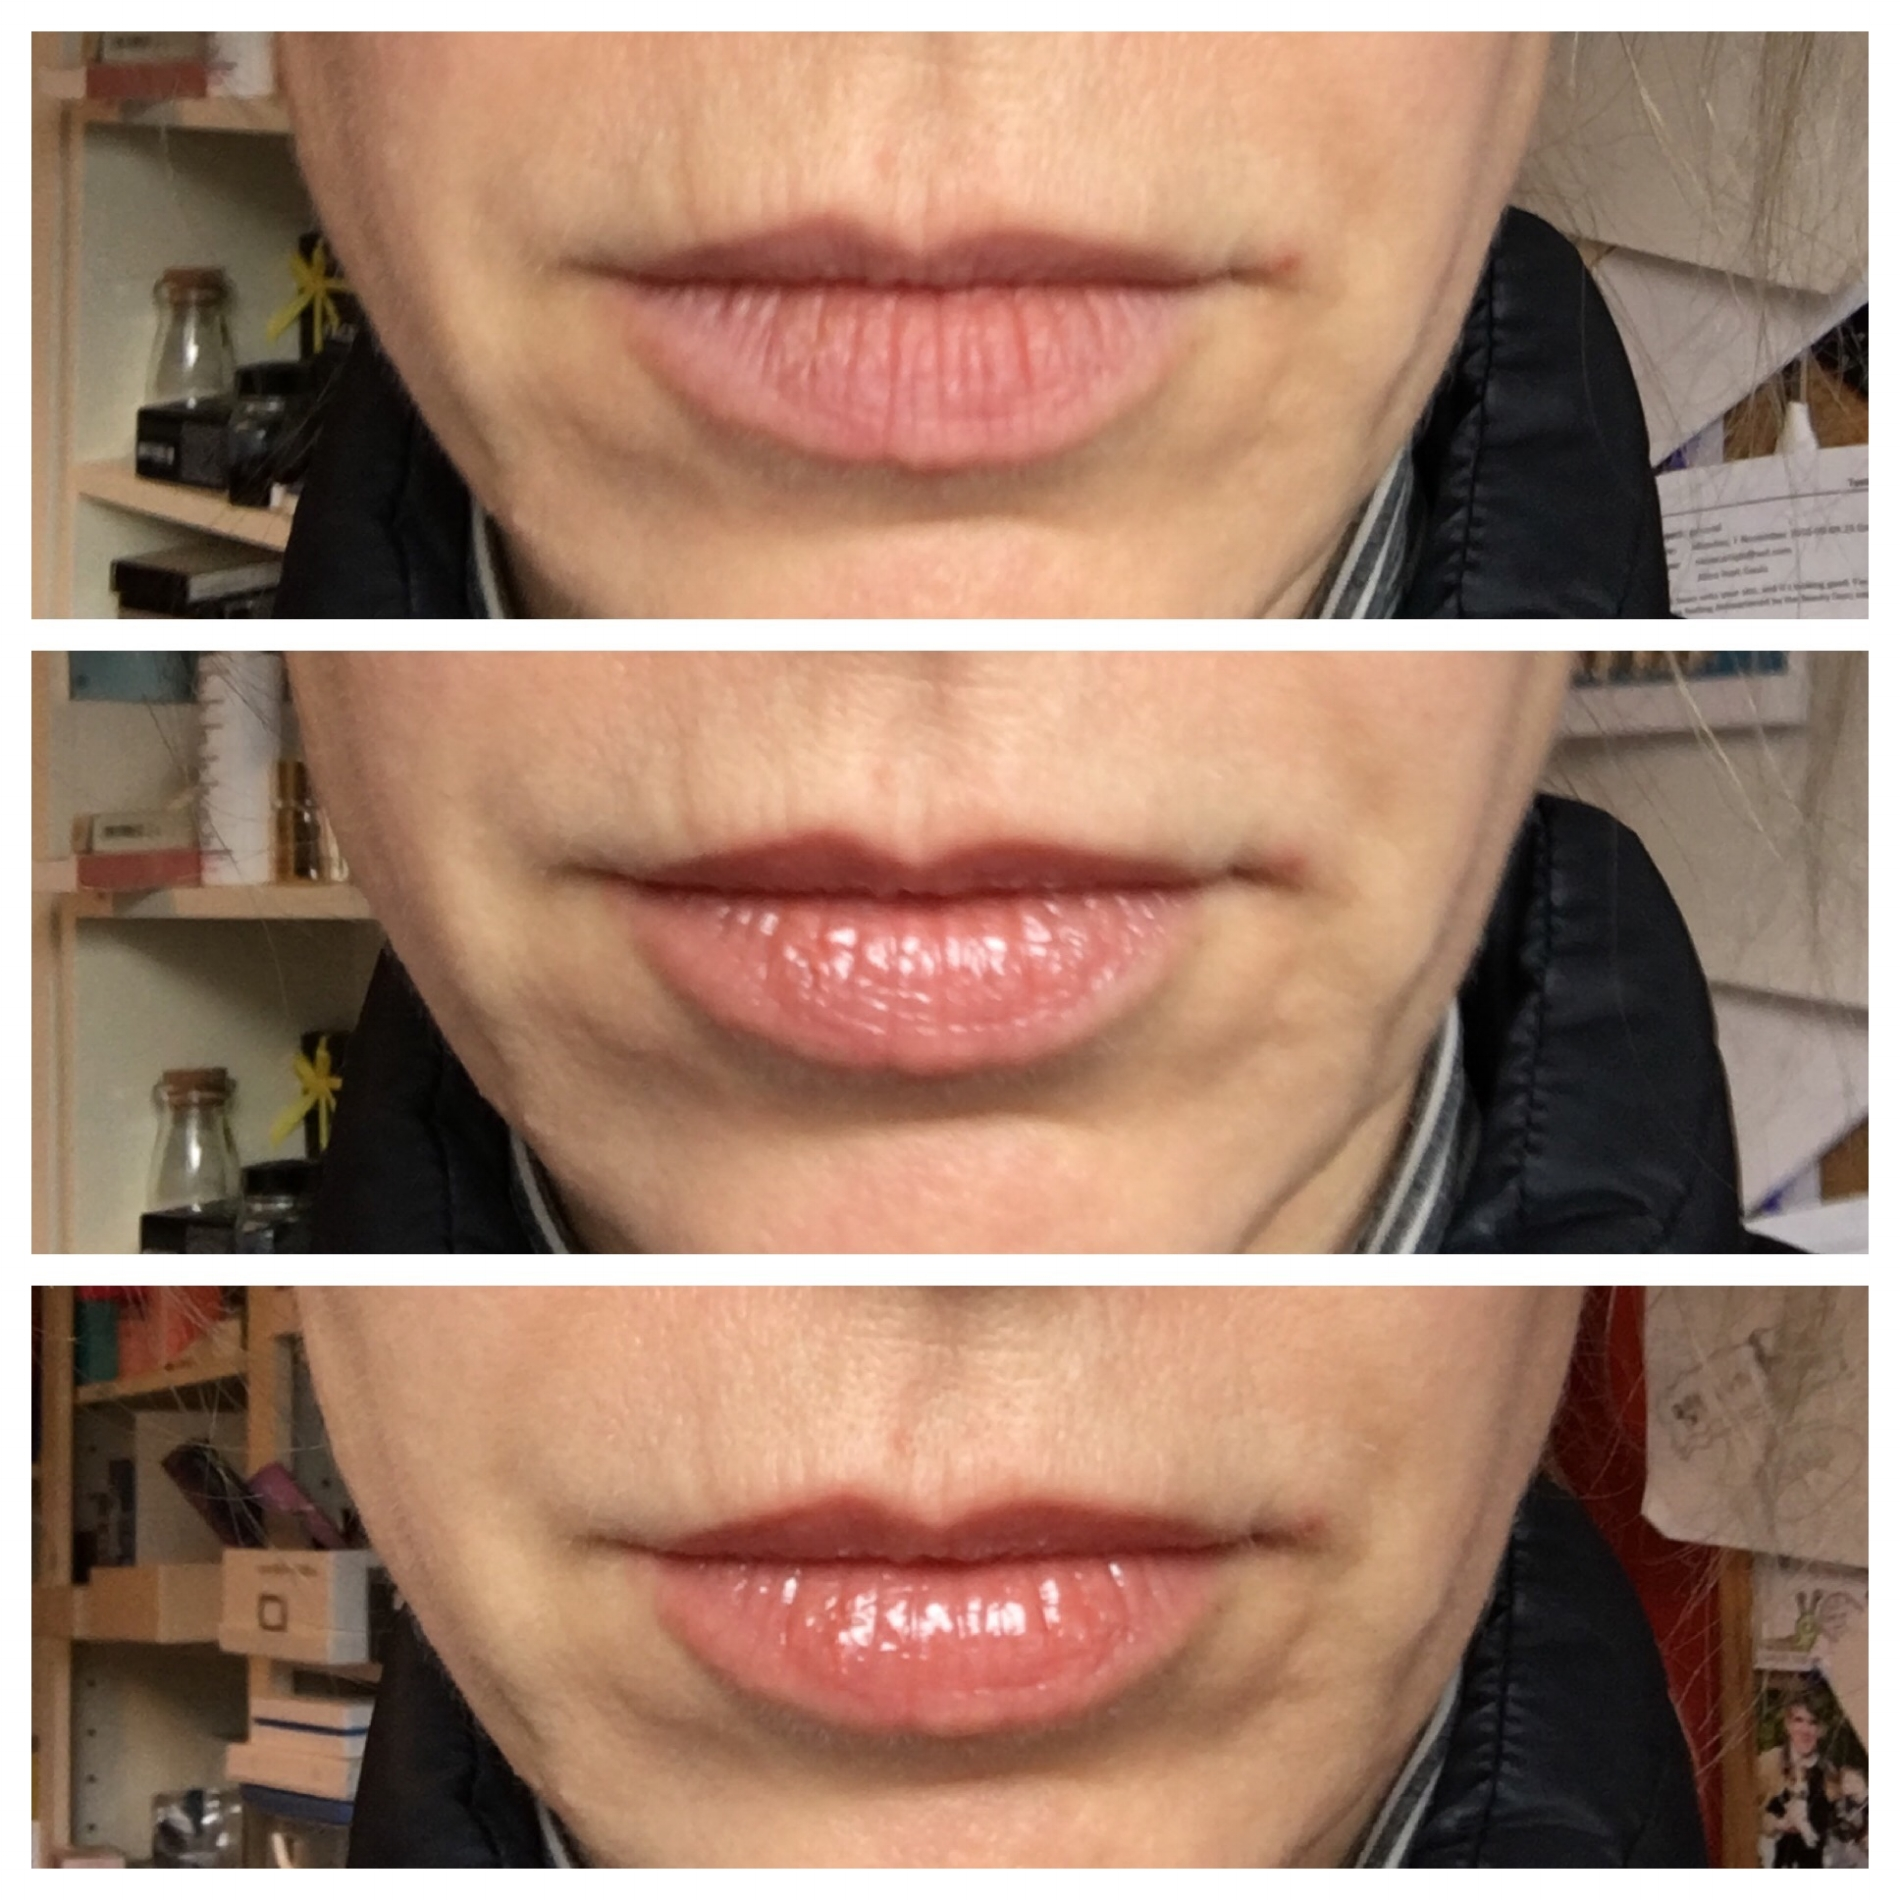 Just gloss, or actual volume? Before; after two minutes; after five minutes and more gloss